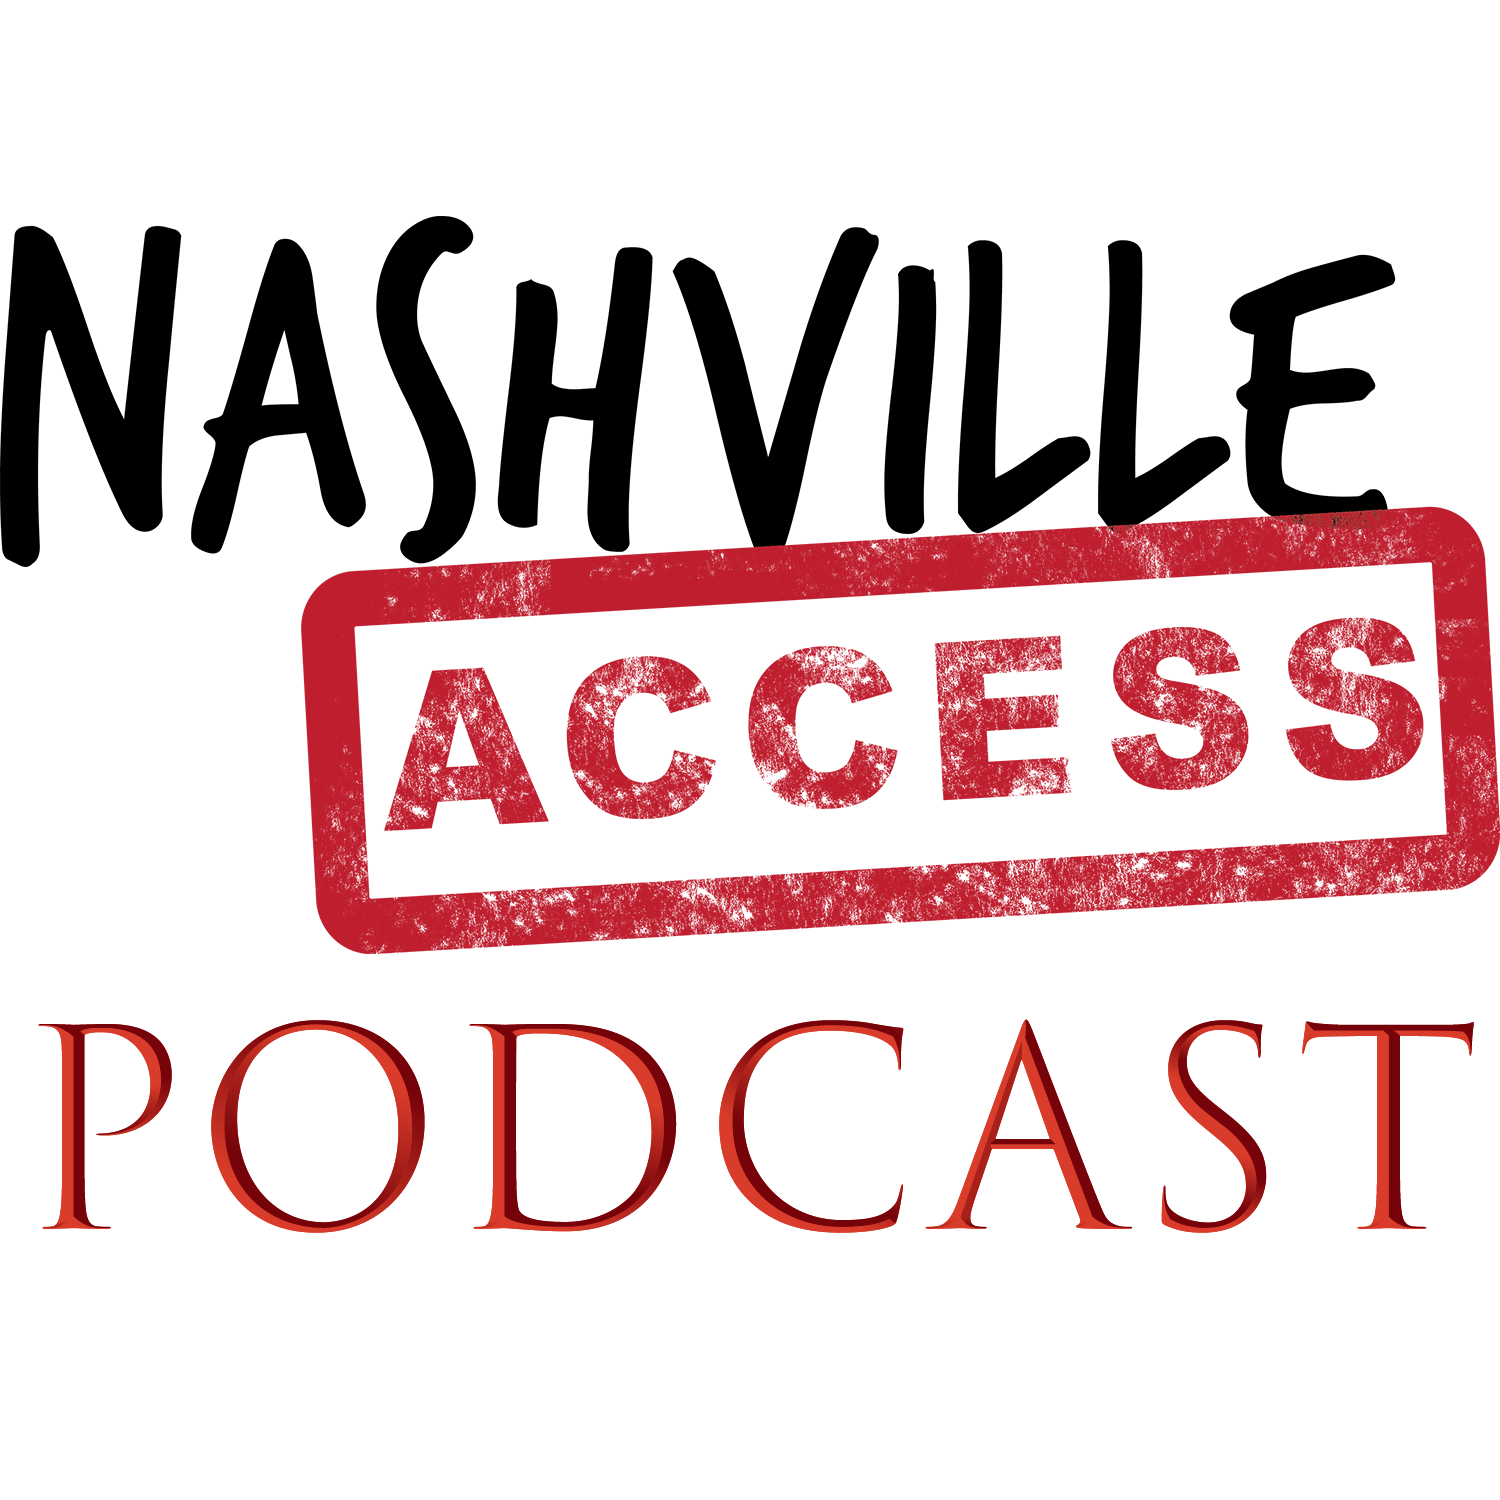 The Podcast    The Nashville Access Podcast launched in late 2017.  Every week, Dallas and Camo discuss a hot topic in Country Music news—sometimes we talk about an artist or event, sometimes things going on in Nashville.  Whatever it is, you can be sure Dallas and Camo have their own unique takes on the topic.  Plus, we feature a long-form interview with country stars, rising country artists, major stars outside of country music; people behind events like the Nashville Film Festival, Americana Festival; hot tourist or nightlife locations and more!  The Nashville Access Podcast is available free, from iTunes, GooglePlay Music, Stitcher, and right here on our website.